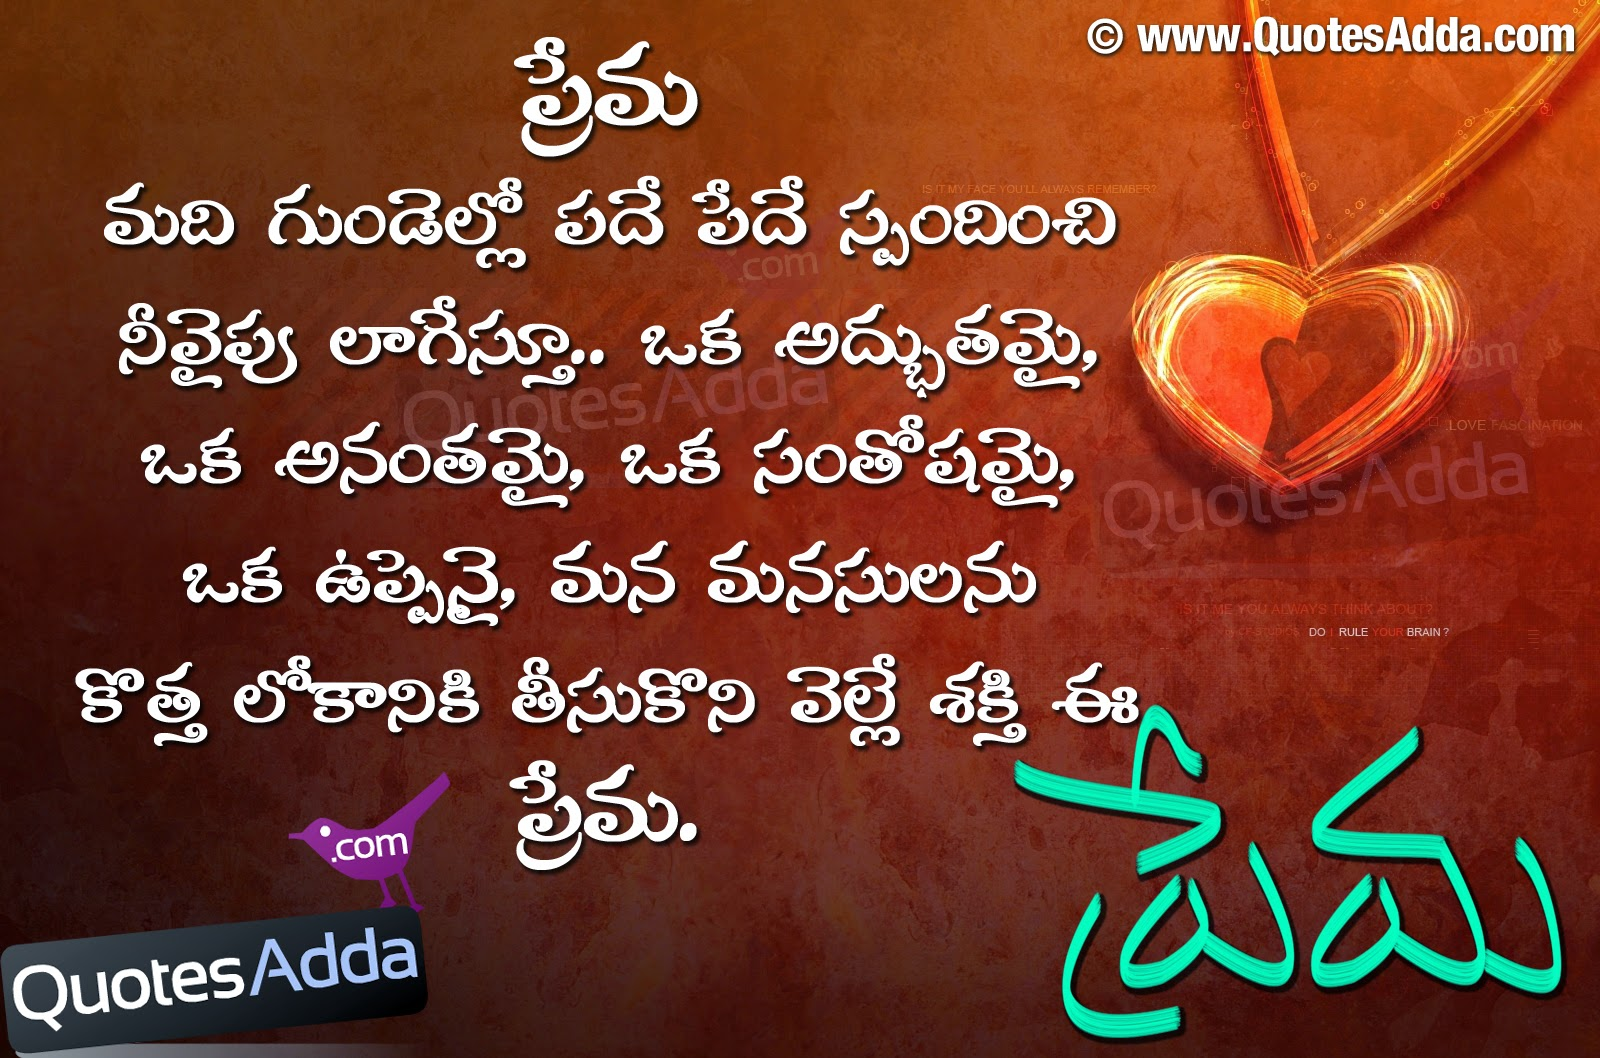 love meaning quotations in telugu language quotesadda